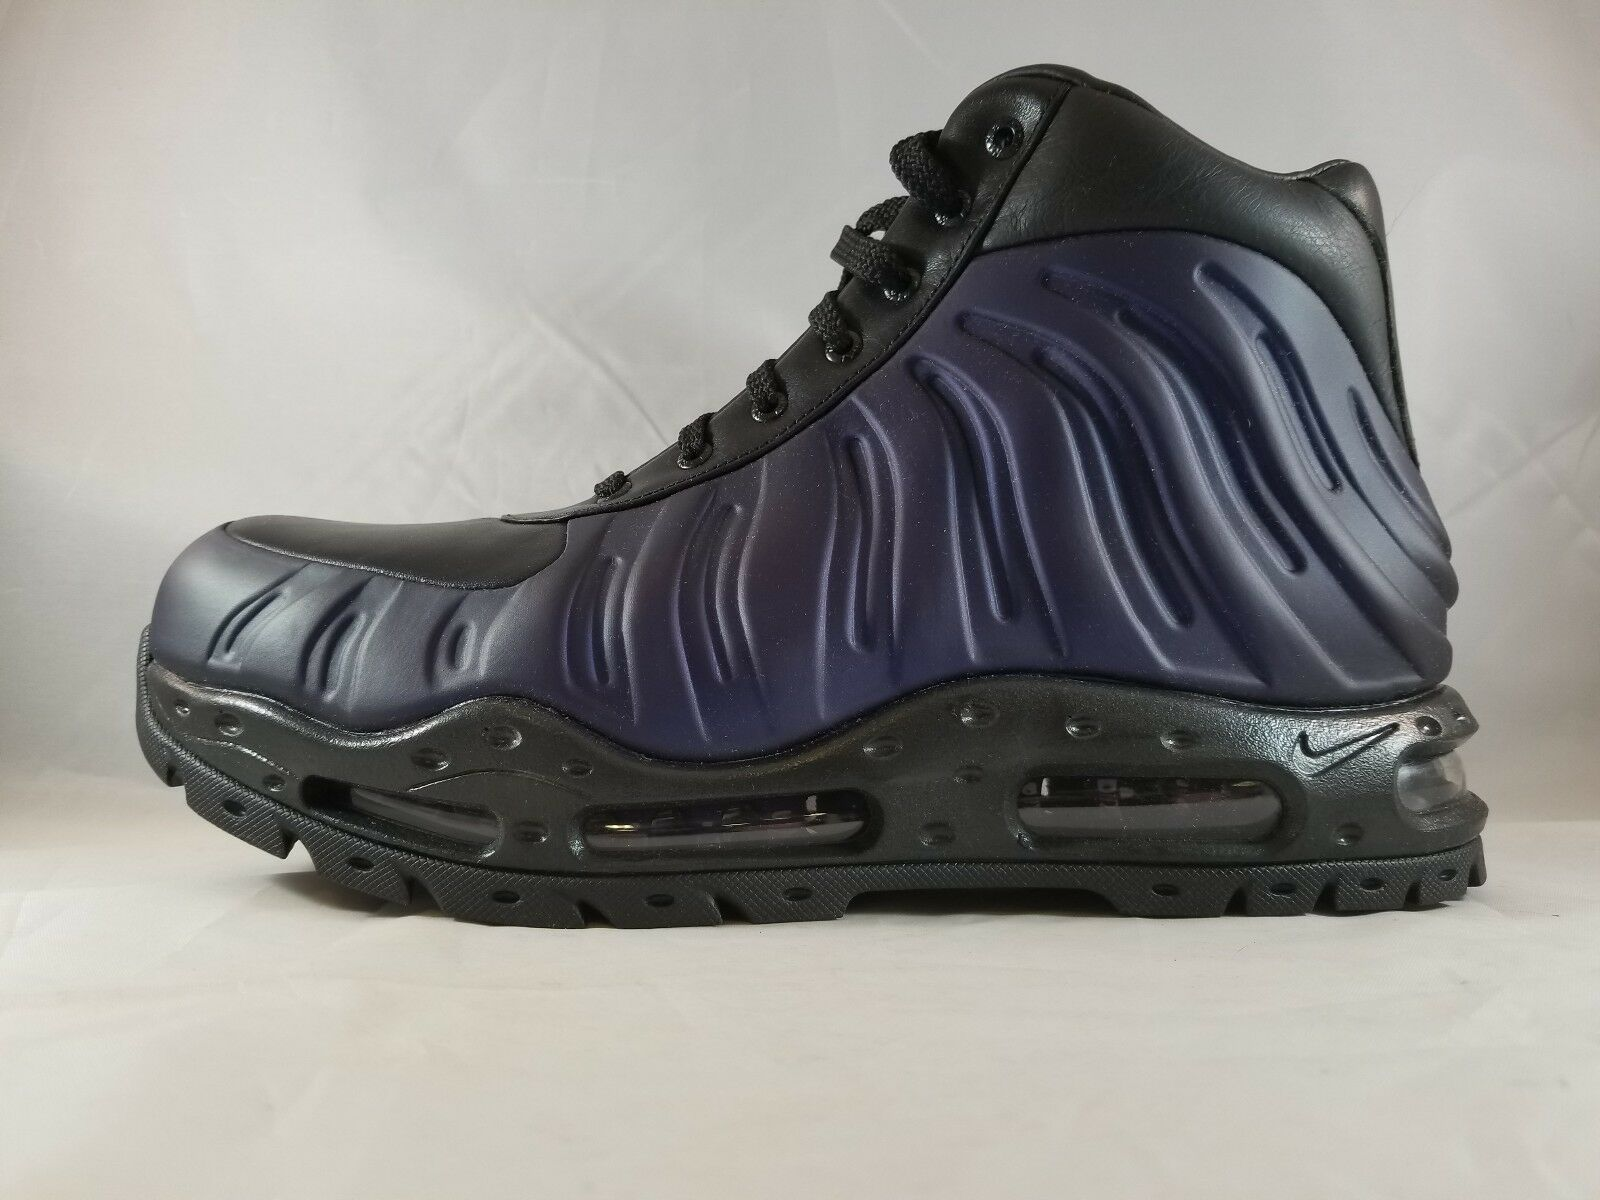 Nike Air Max Foamdome Men's Boots Boots Boots 843749 500 Size 10.5 5b1ff9